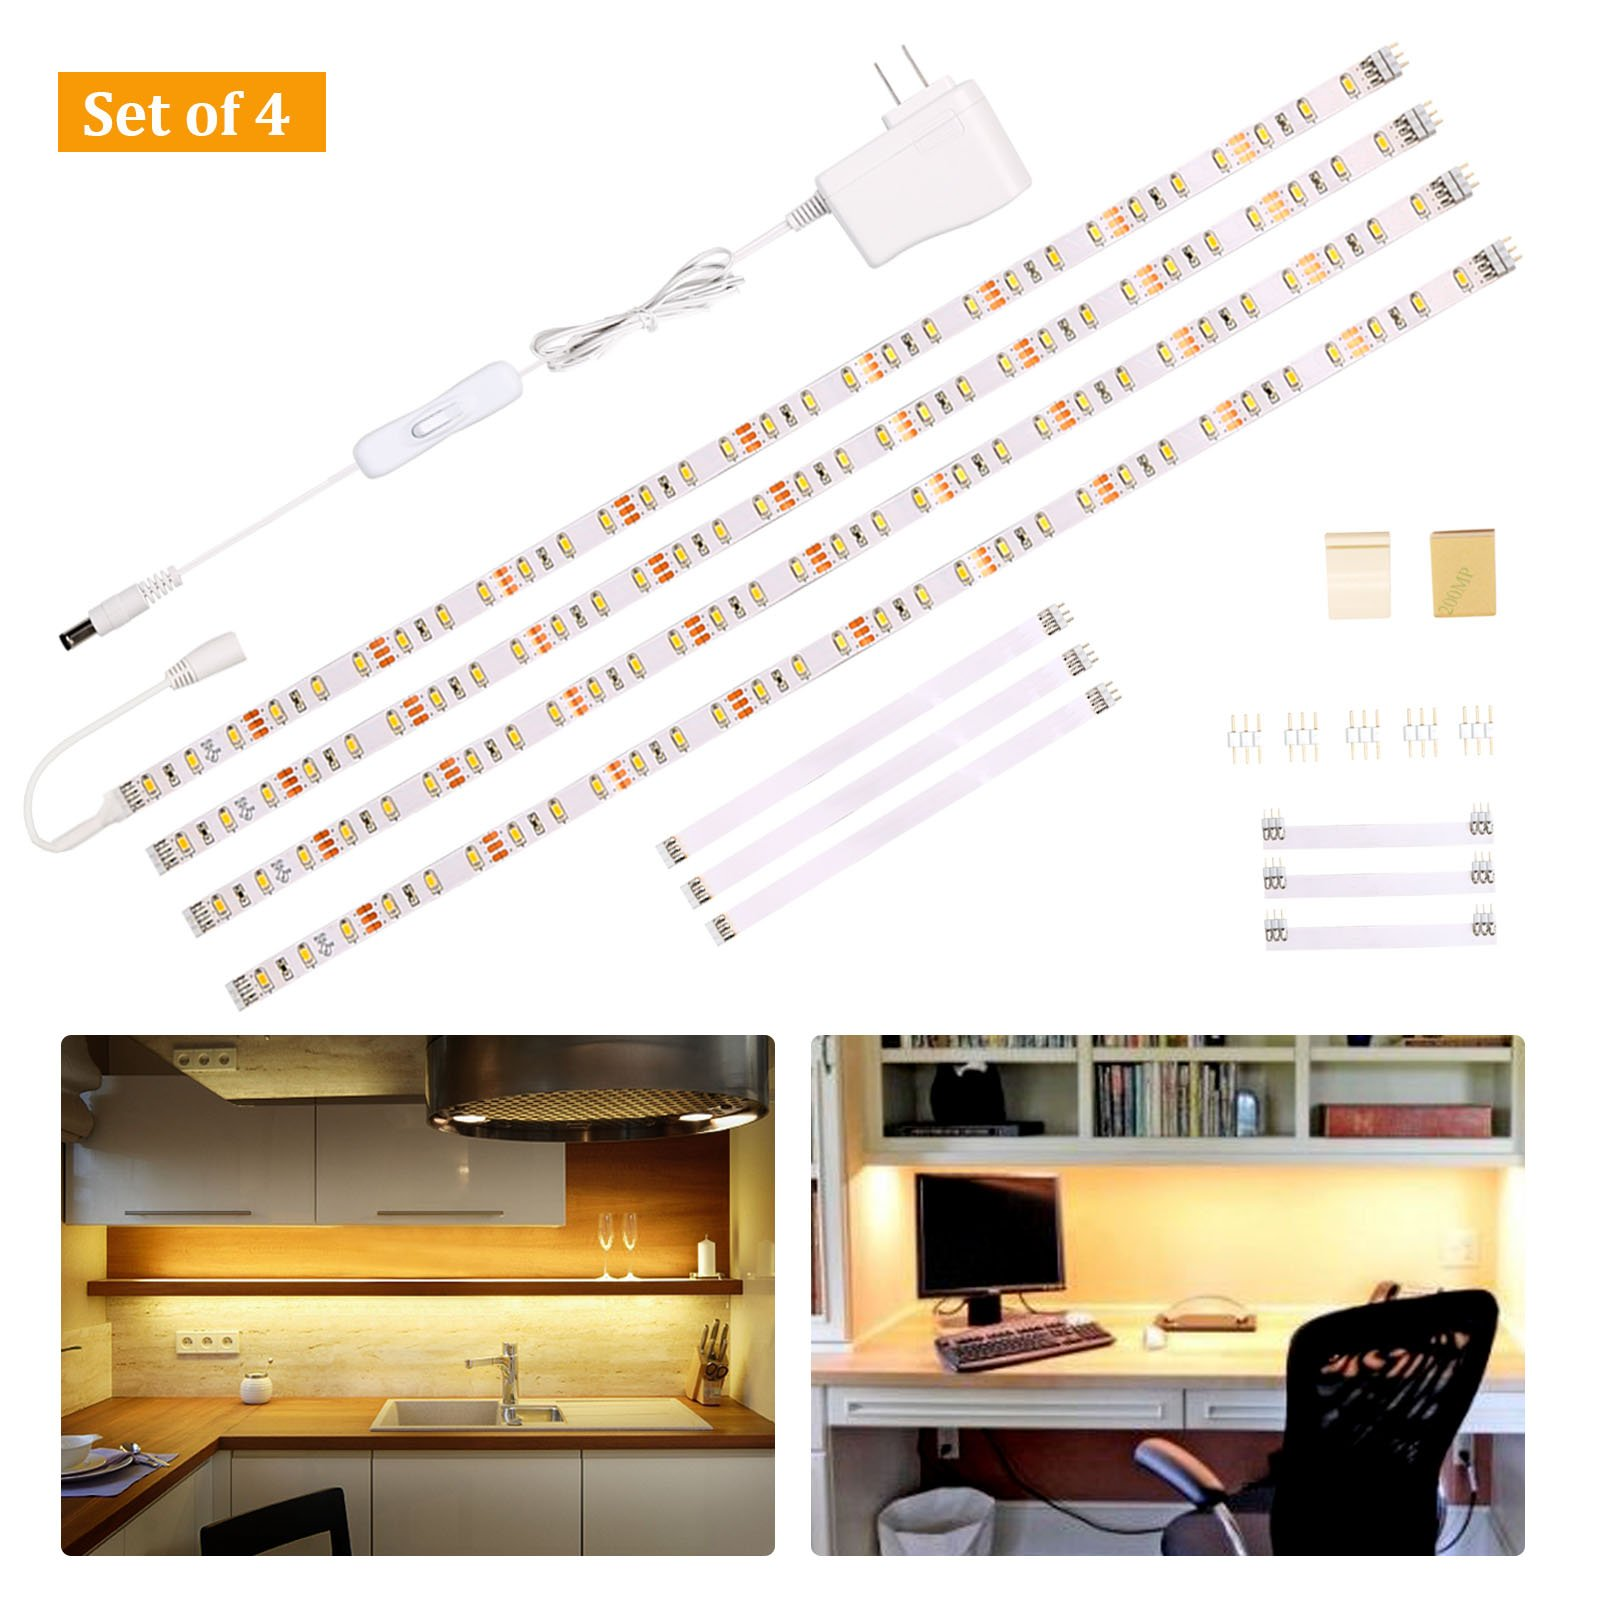 Wobane Under Cabinet Lighting Kit,Flexible LED Strip Lights Bar,Under Counter Lights for Kitchen,Cupboard,Desk,Monitor Back,Shelf,6.6 Feet Tape Light Set,UL Listed,120 LEDs,1100lm,2700K WarmWhite by WOBANE (Image #1)